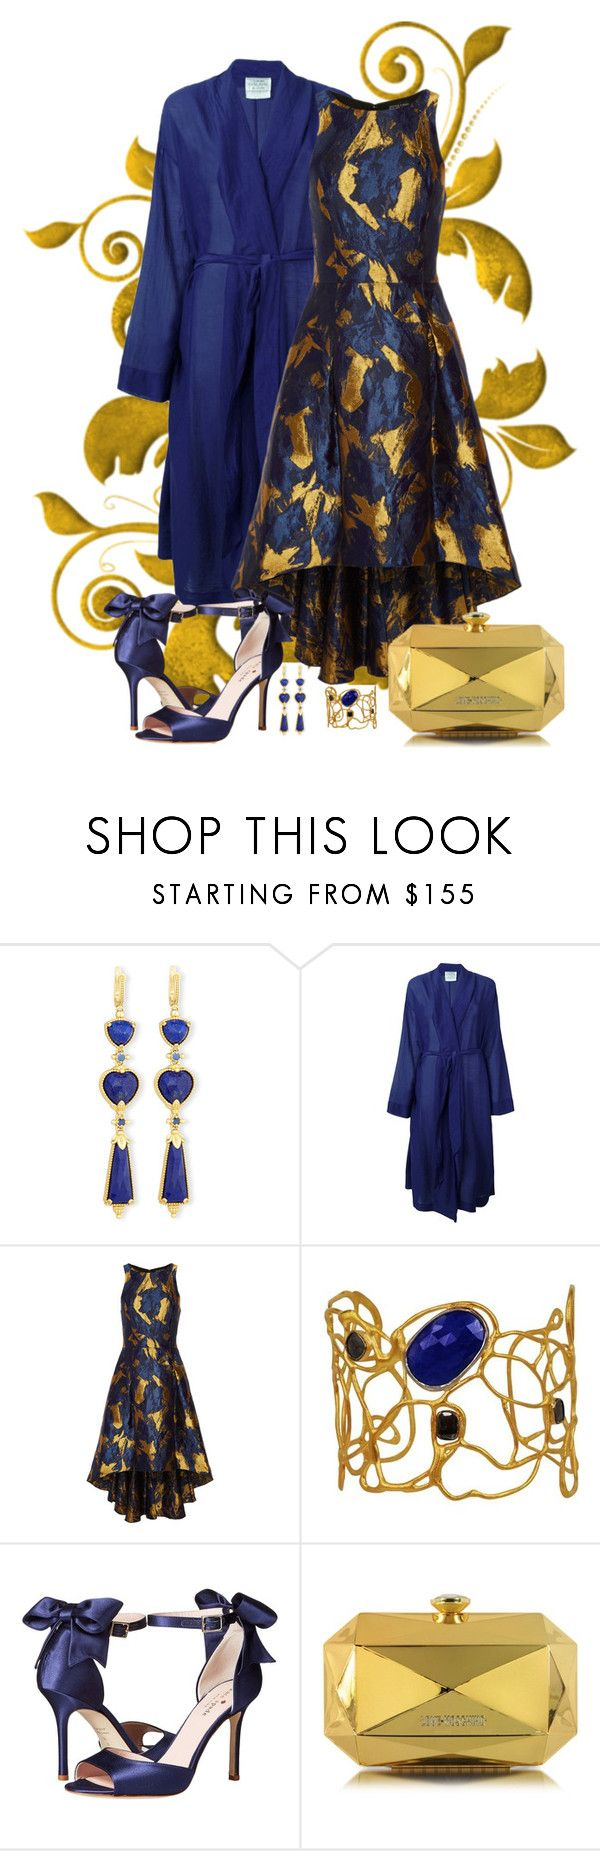 """""""Sachin & Babi Brocade Dress Look"""" by romaboots-1 ❤ liked on Polyvore featuring Konstantino, Forte Forte, NOIR Sachin + Babi, Vassiliki, Kate Spade and Love Moschino"""